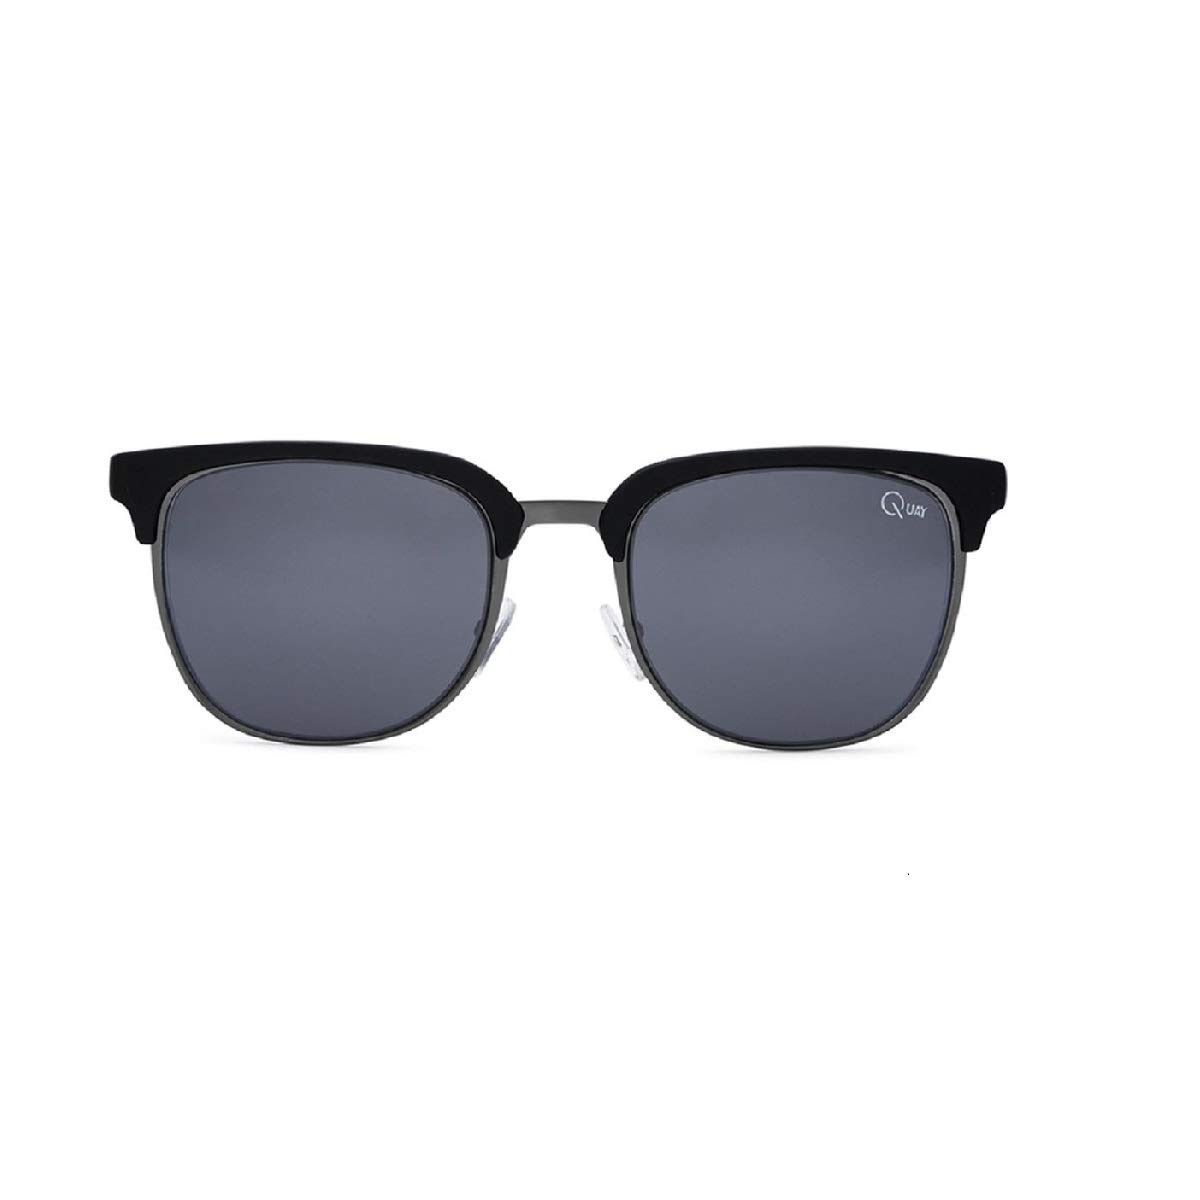 3c9c75c1752 Amazon.com  Quay Men s Flint Sunglasses (Matte Black